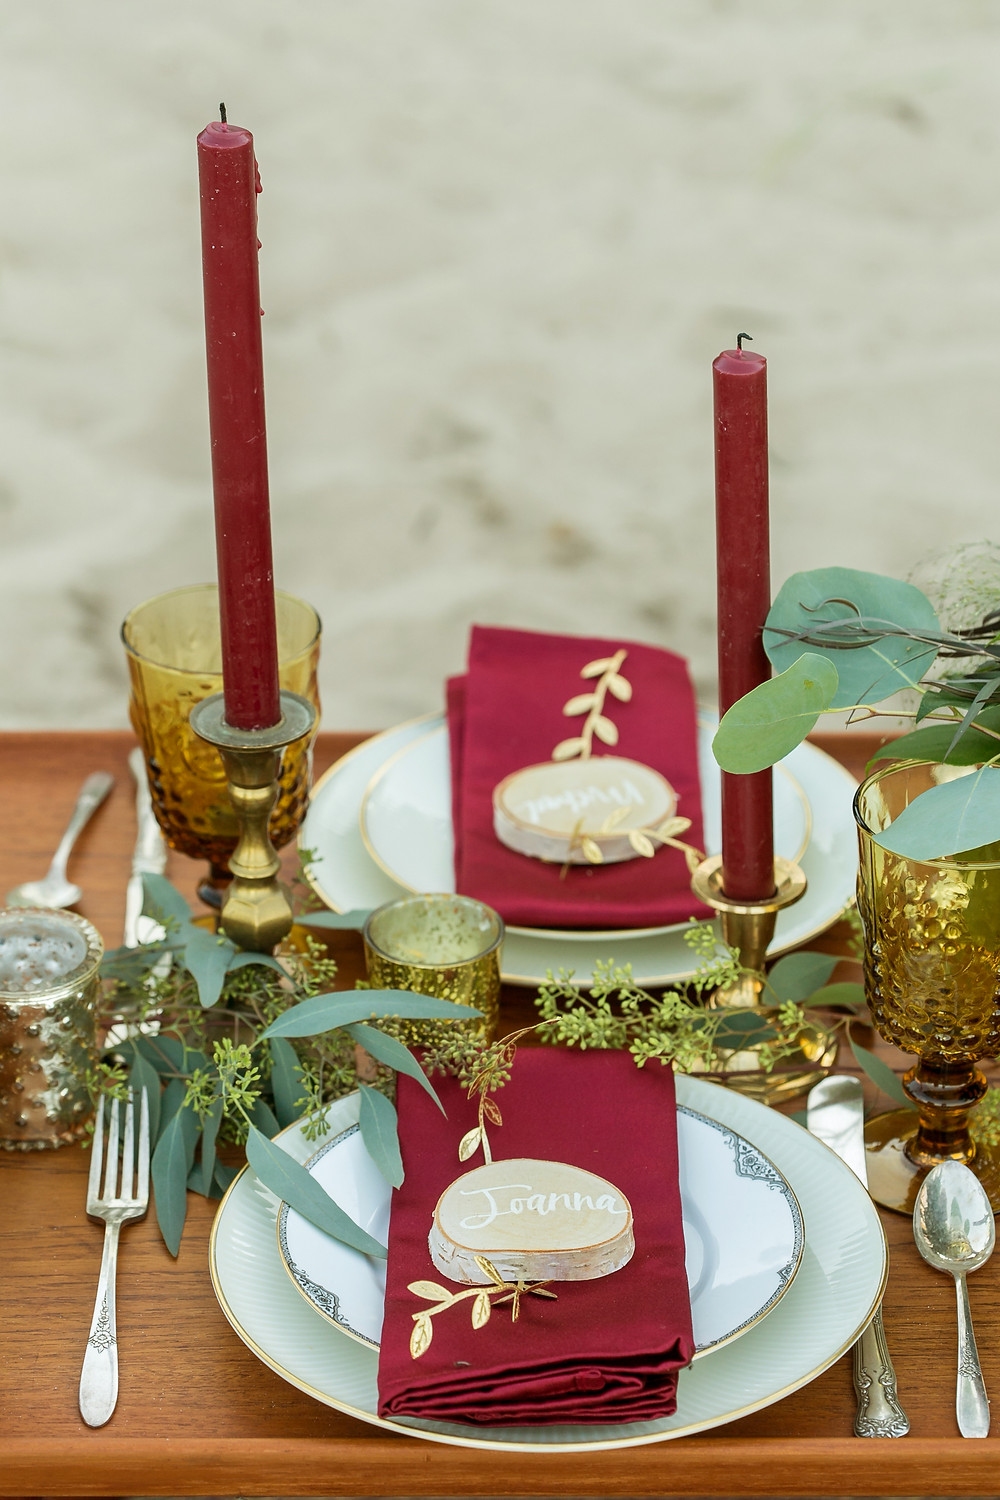 Tablescape using vintage flatware, stemware, china, and burgundy candles for an upscale beach picnic